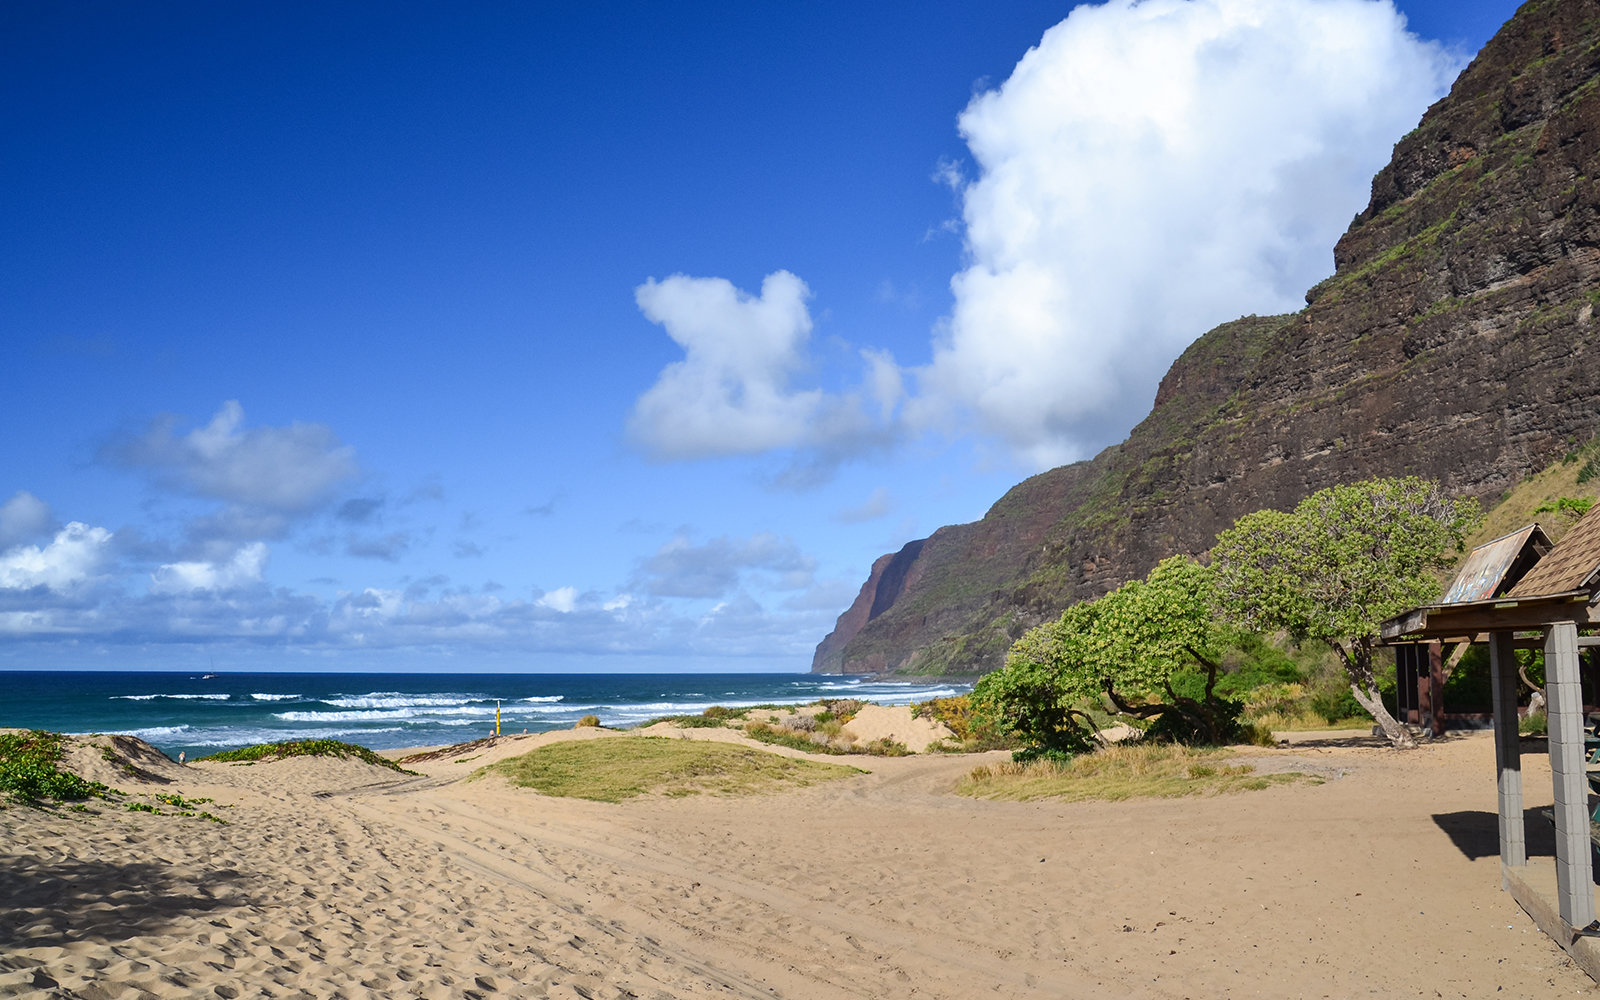 Polihale Beach State Park - Kauai, Hawaii, USA